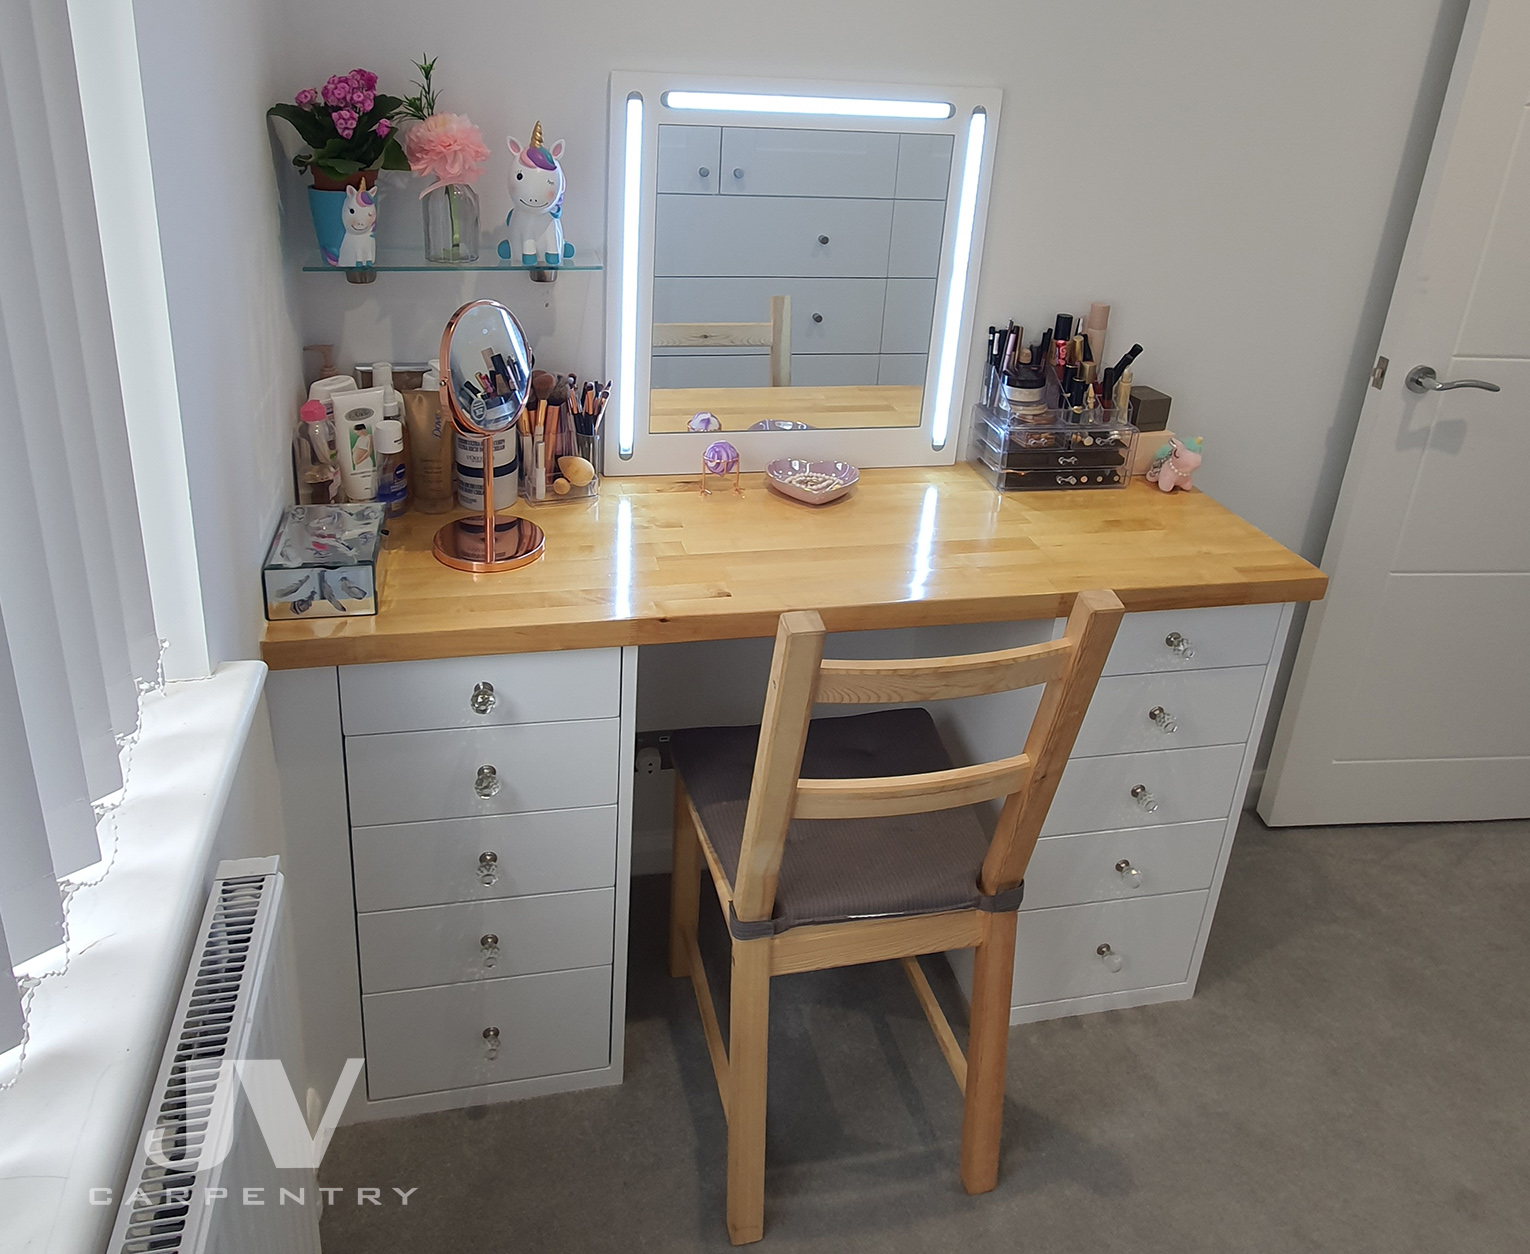 made-to-measure dressing table with fitted mirror and wooden counter top